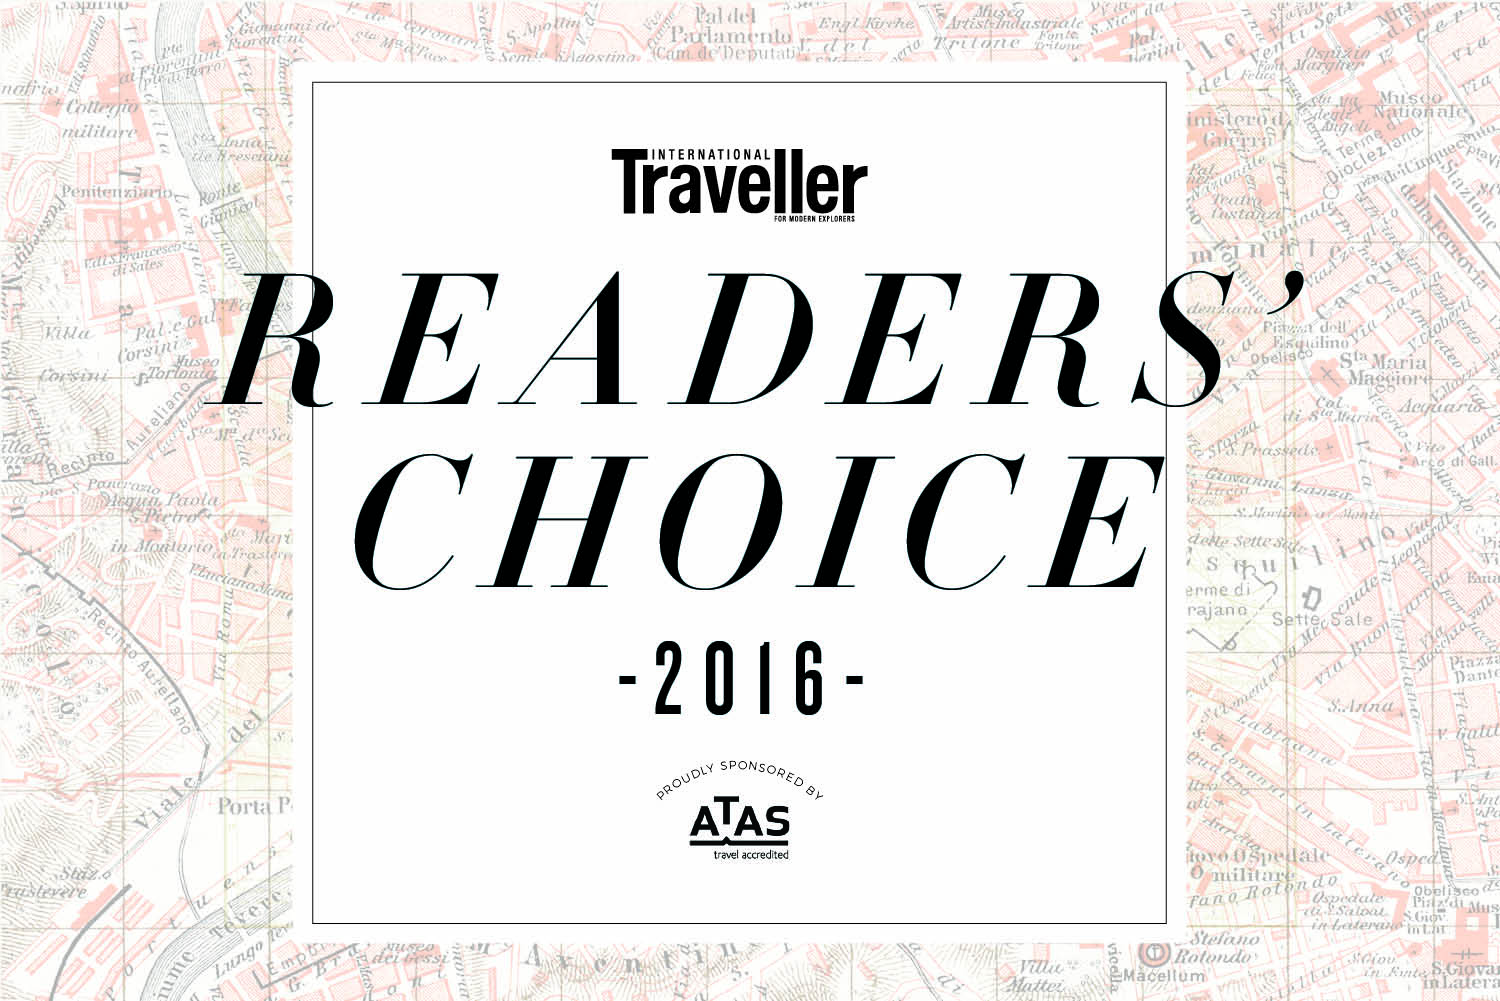 International Traveller's Readers' Choice Awards 2016